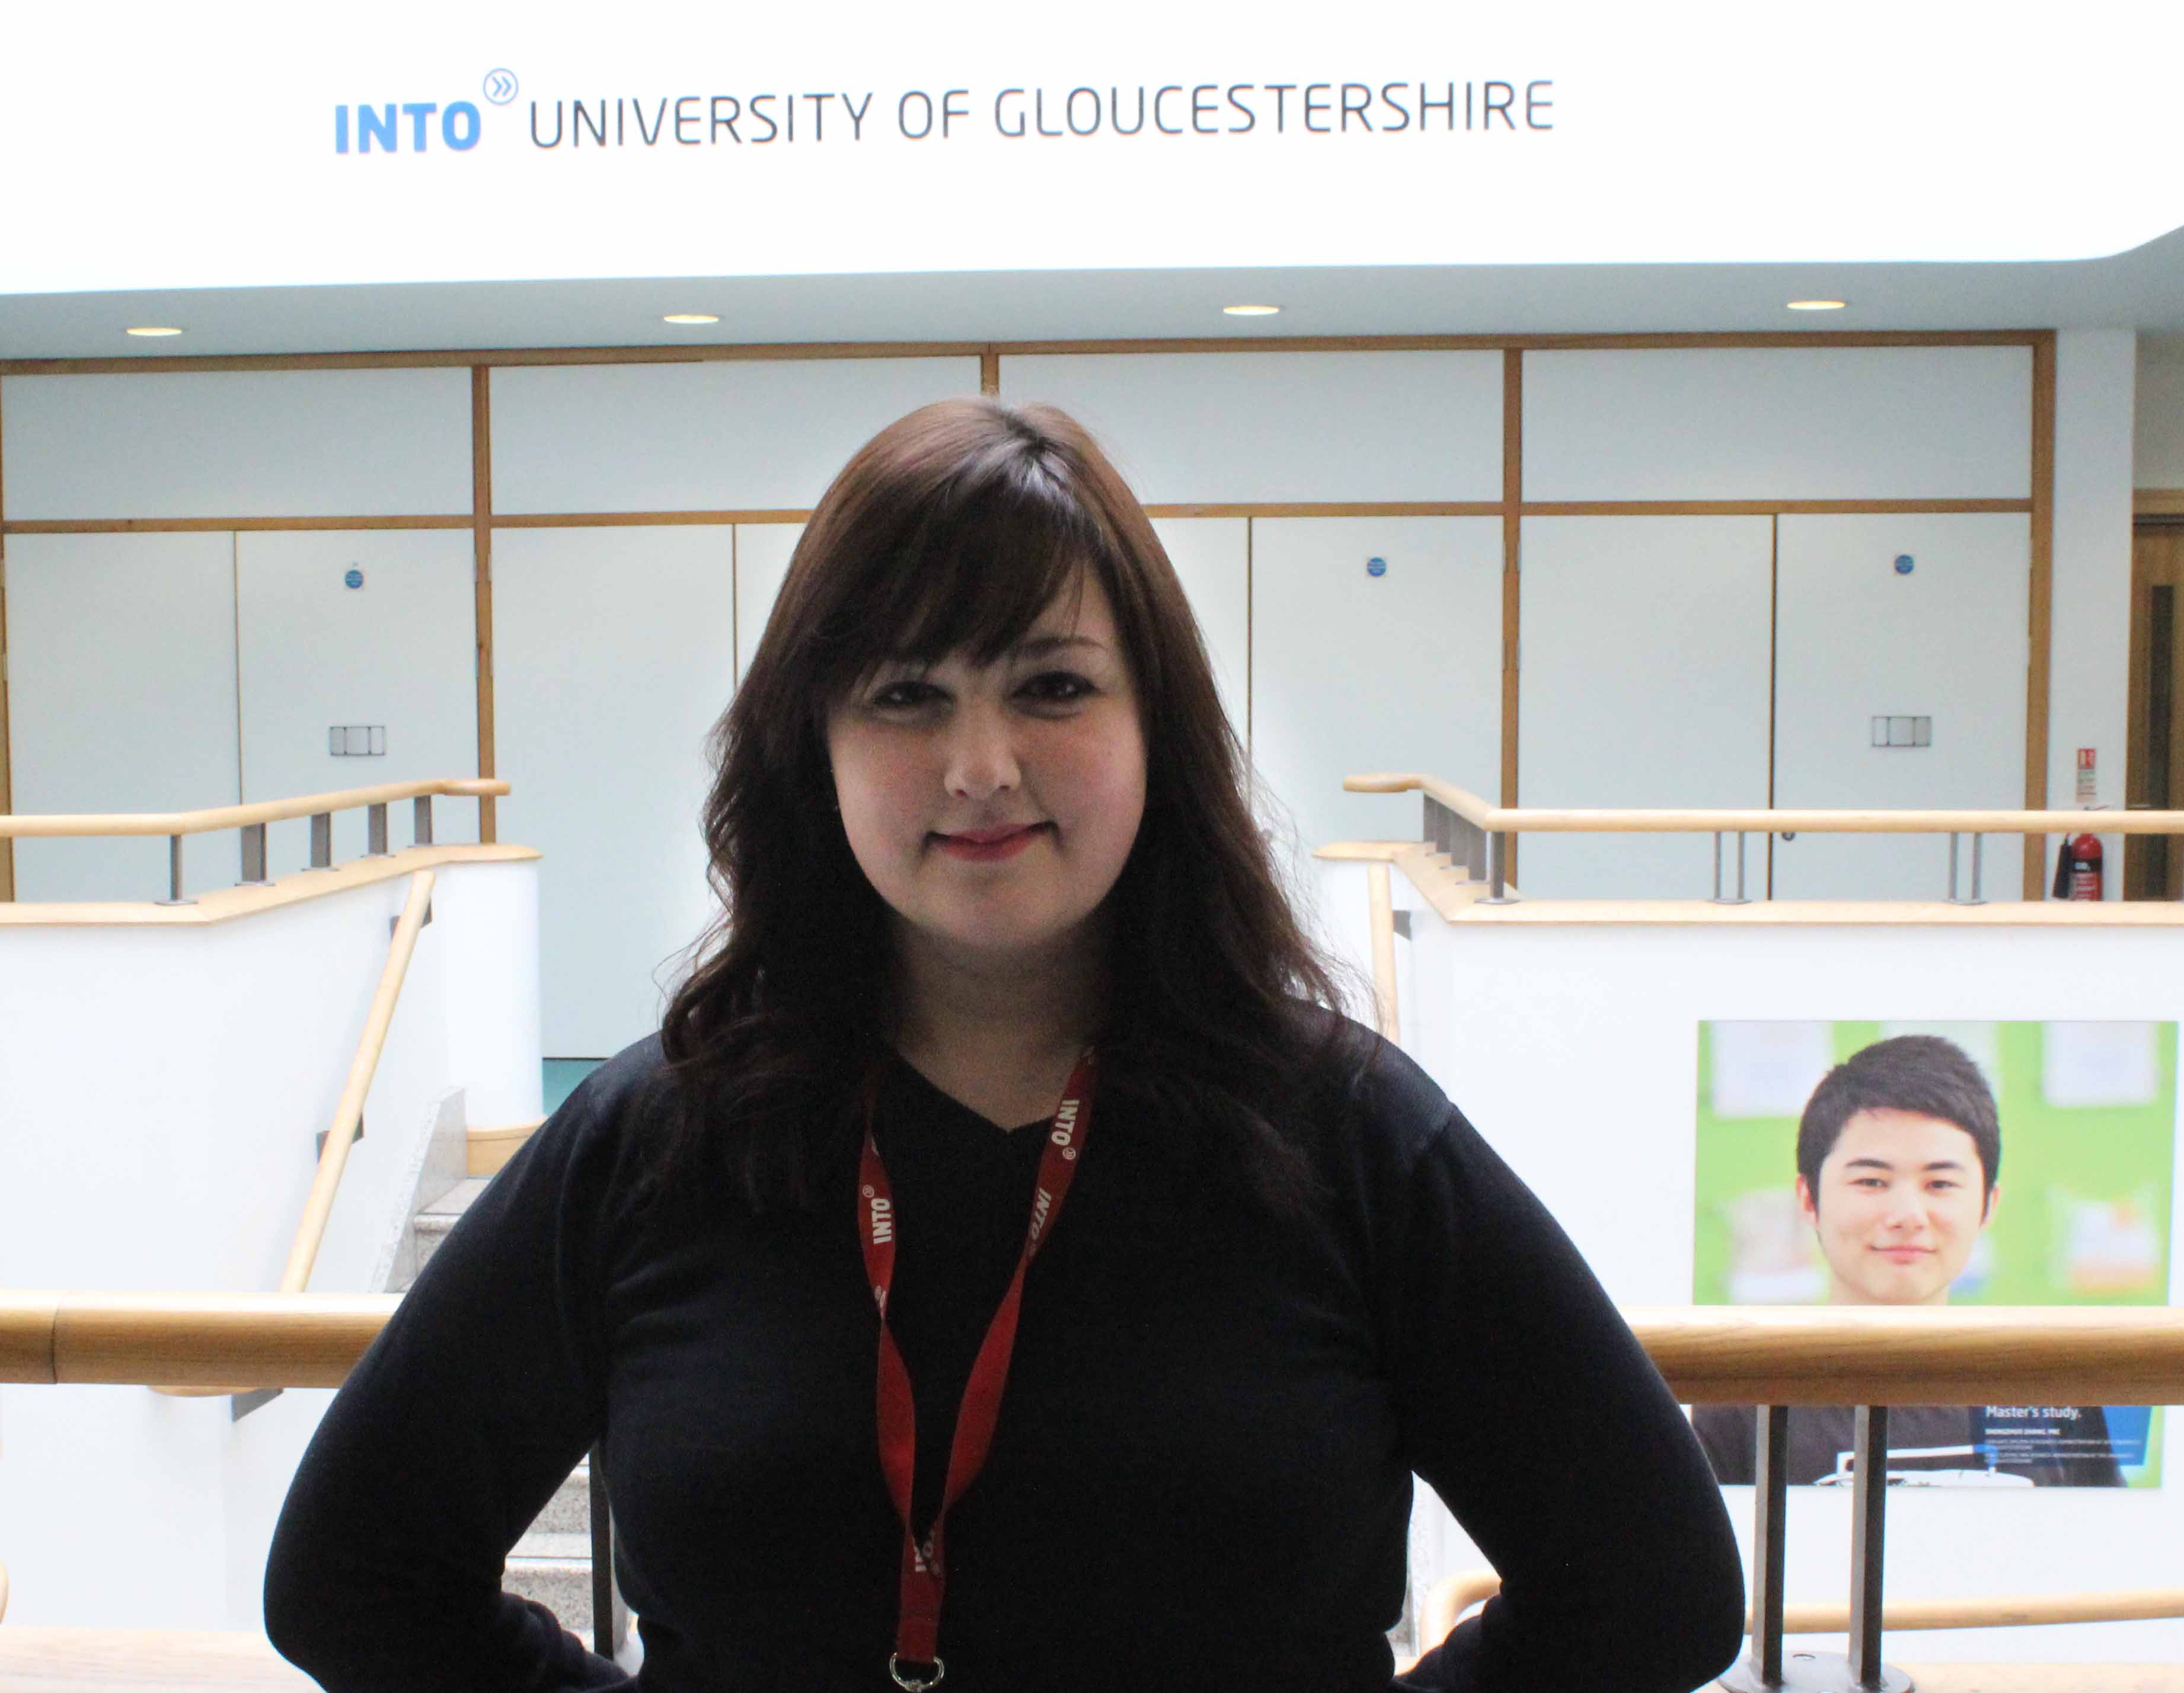 INTO University of Gloucestershire - Hannah Hudman - Student Experience Coordinator